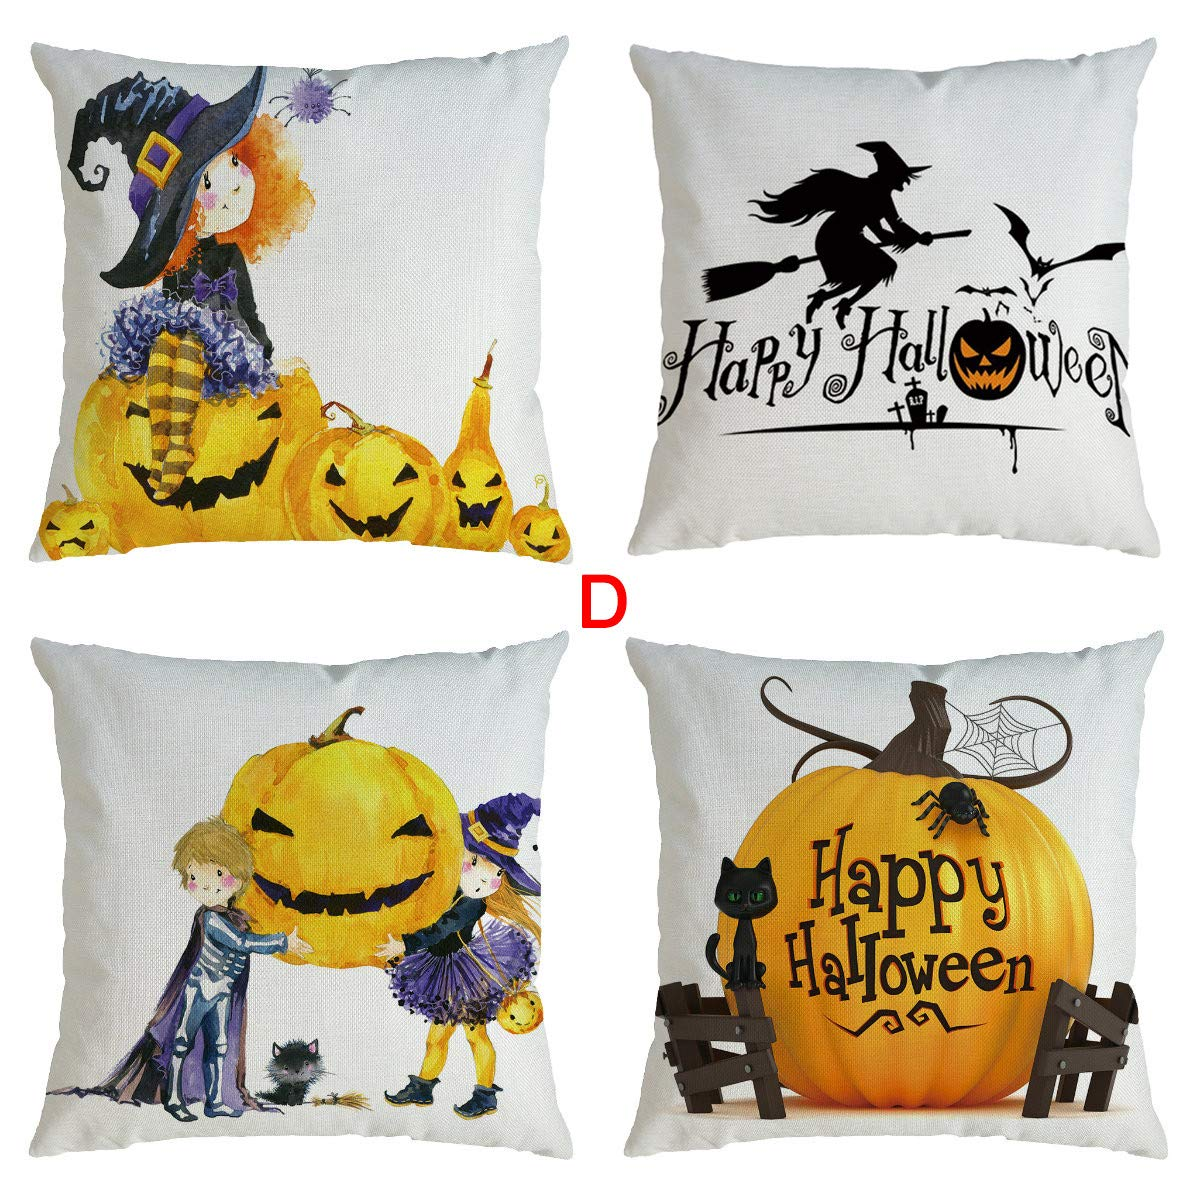 Throw Pillow Covers,Lucoo 4PCS Pumpkin Series Halloween Pillowcase Decorative Square Cushion Cases Sofa Cushion Covers Set for Home Decor18 x 18 Inch 45 x 45 cm by Lucoo Home